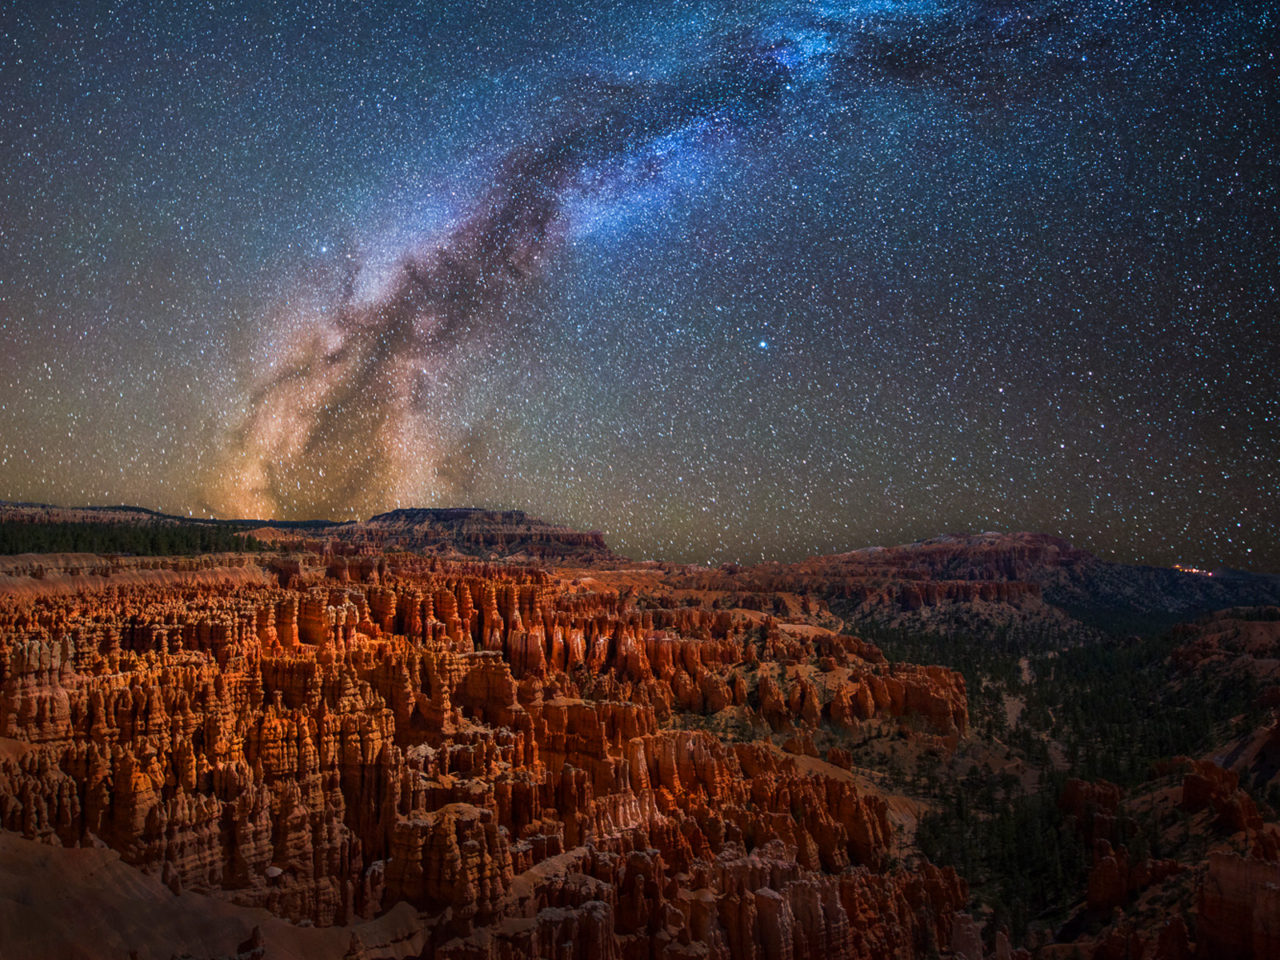 Free Beautiful Desktop Wallpapers For The Fall Milky Way Bryce Canyon National Park Utah United States